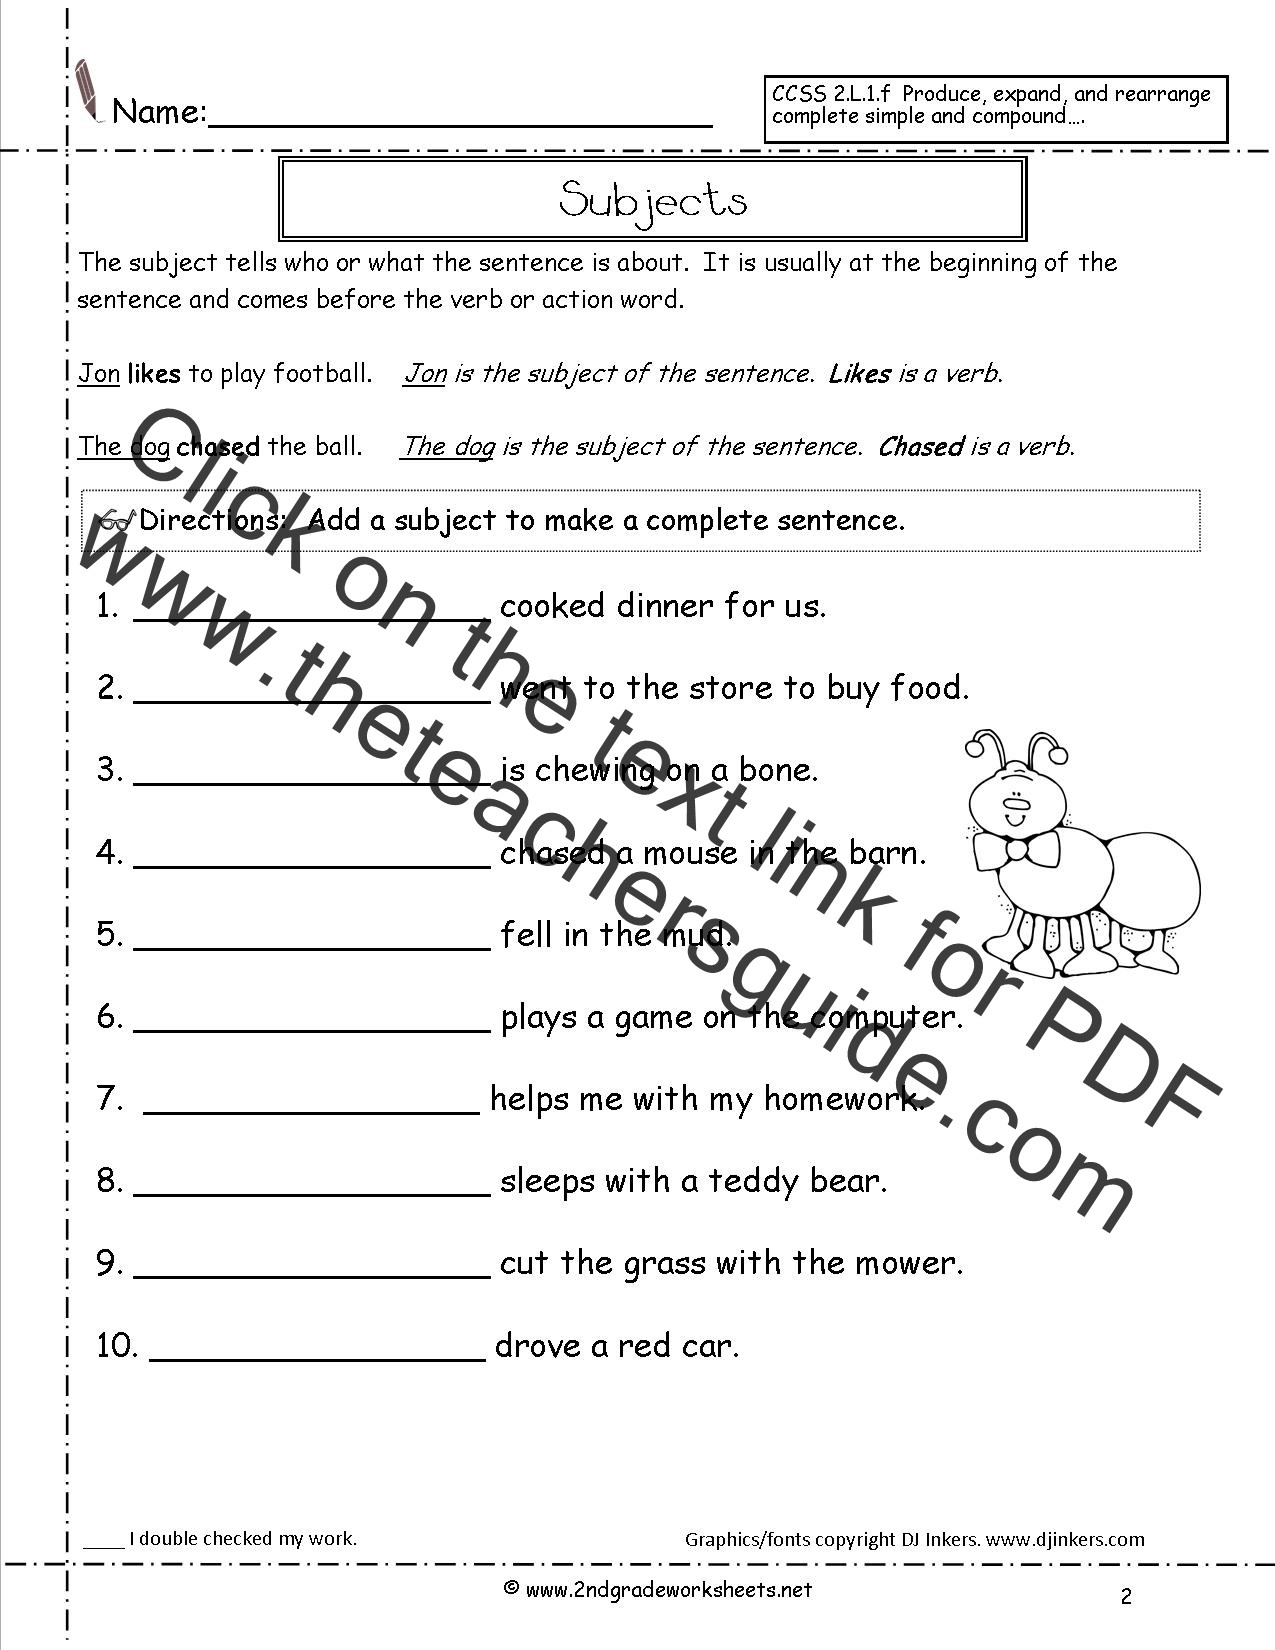 Writing Complete Sentences Worksheets Second Grade Sentences Worksheets Ccss 2 L 1 F Worksheets